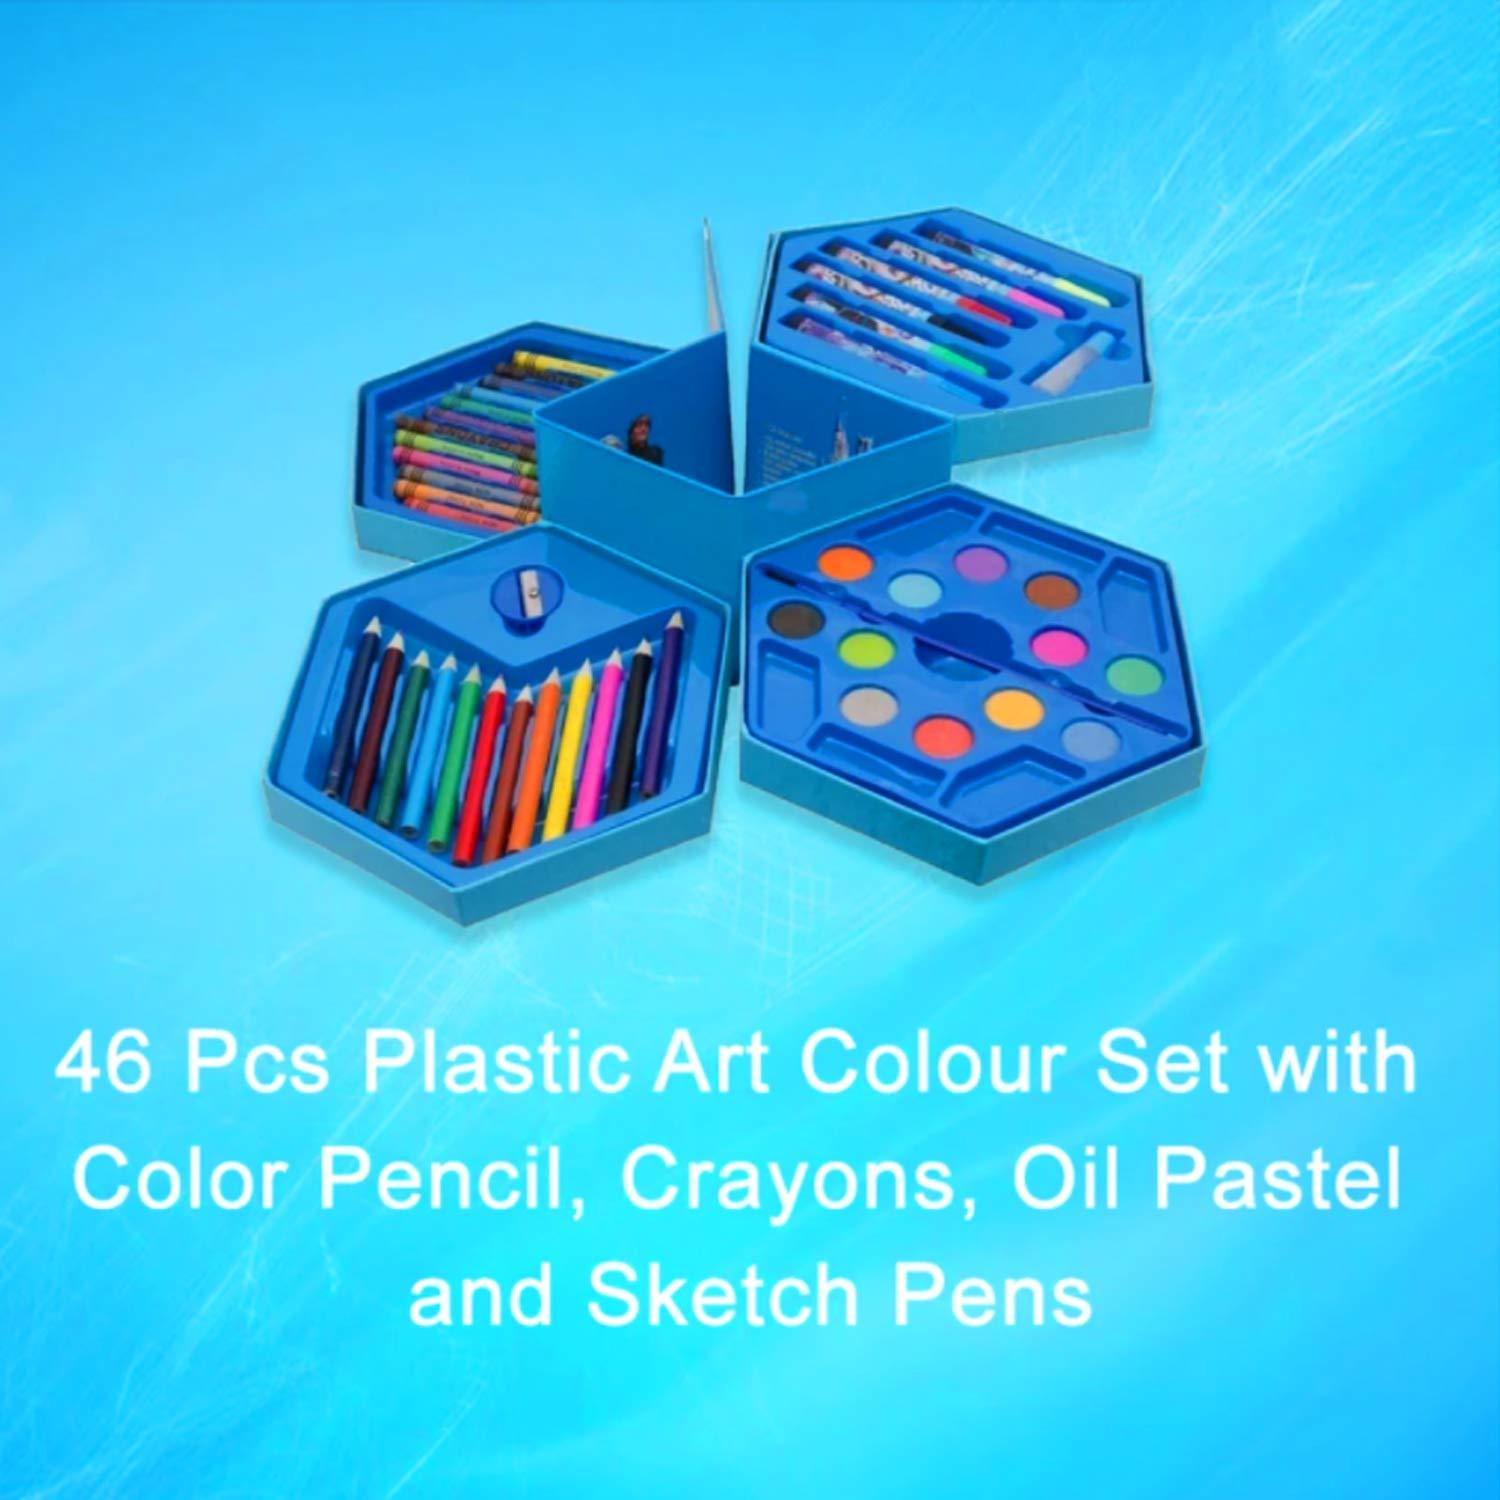 Kids Mandi 46 pieces Multicolour Art Set for kids/Paint brush,Color Pencil, Water color,Crayons,Paint Brush,Eraser,Sharpener (All in 1 color Box) Design may vary